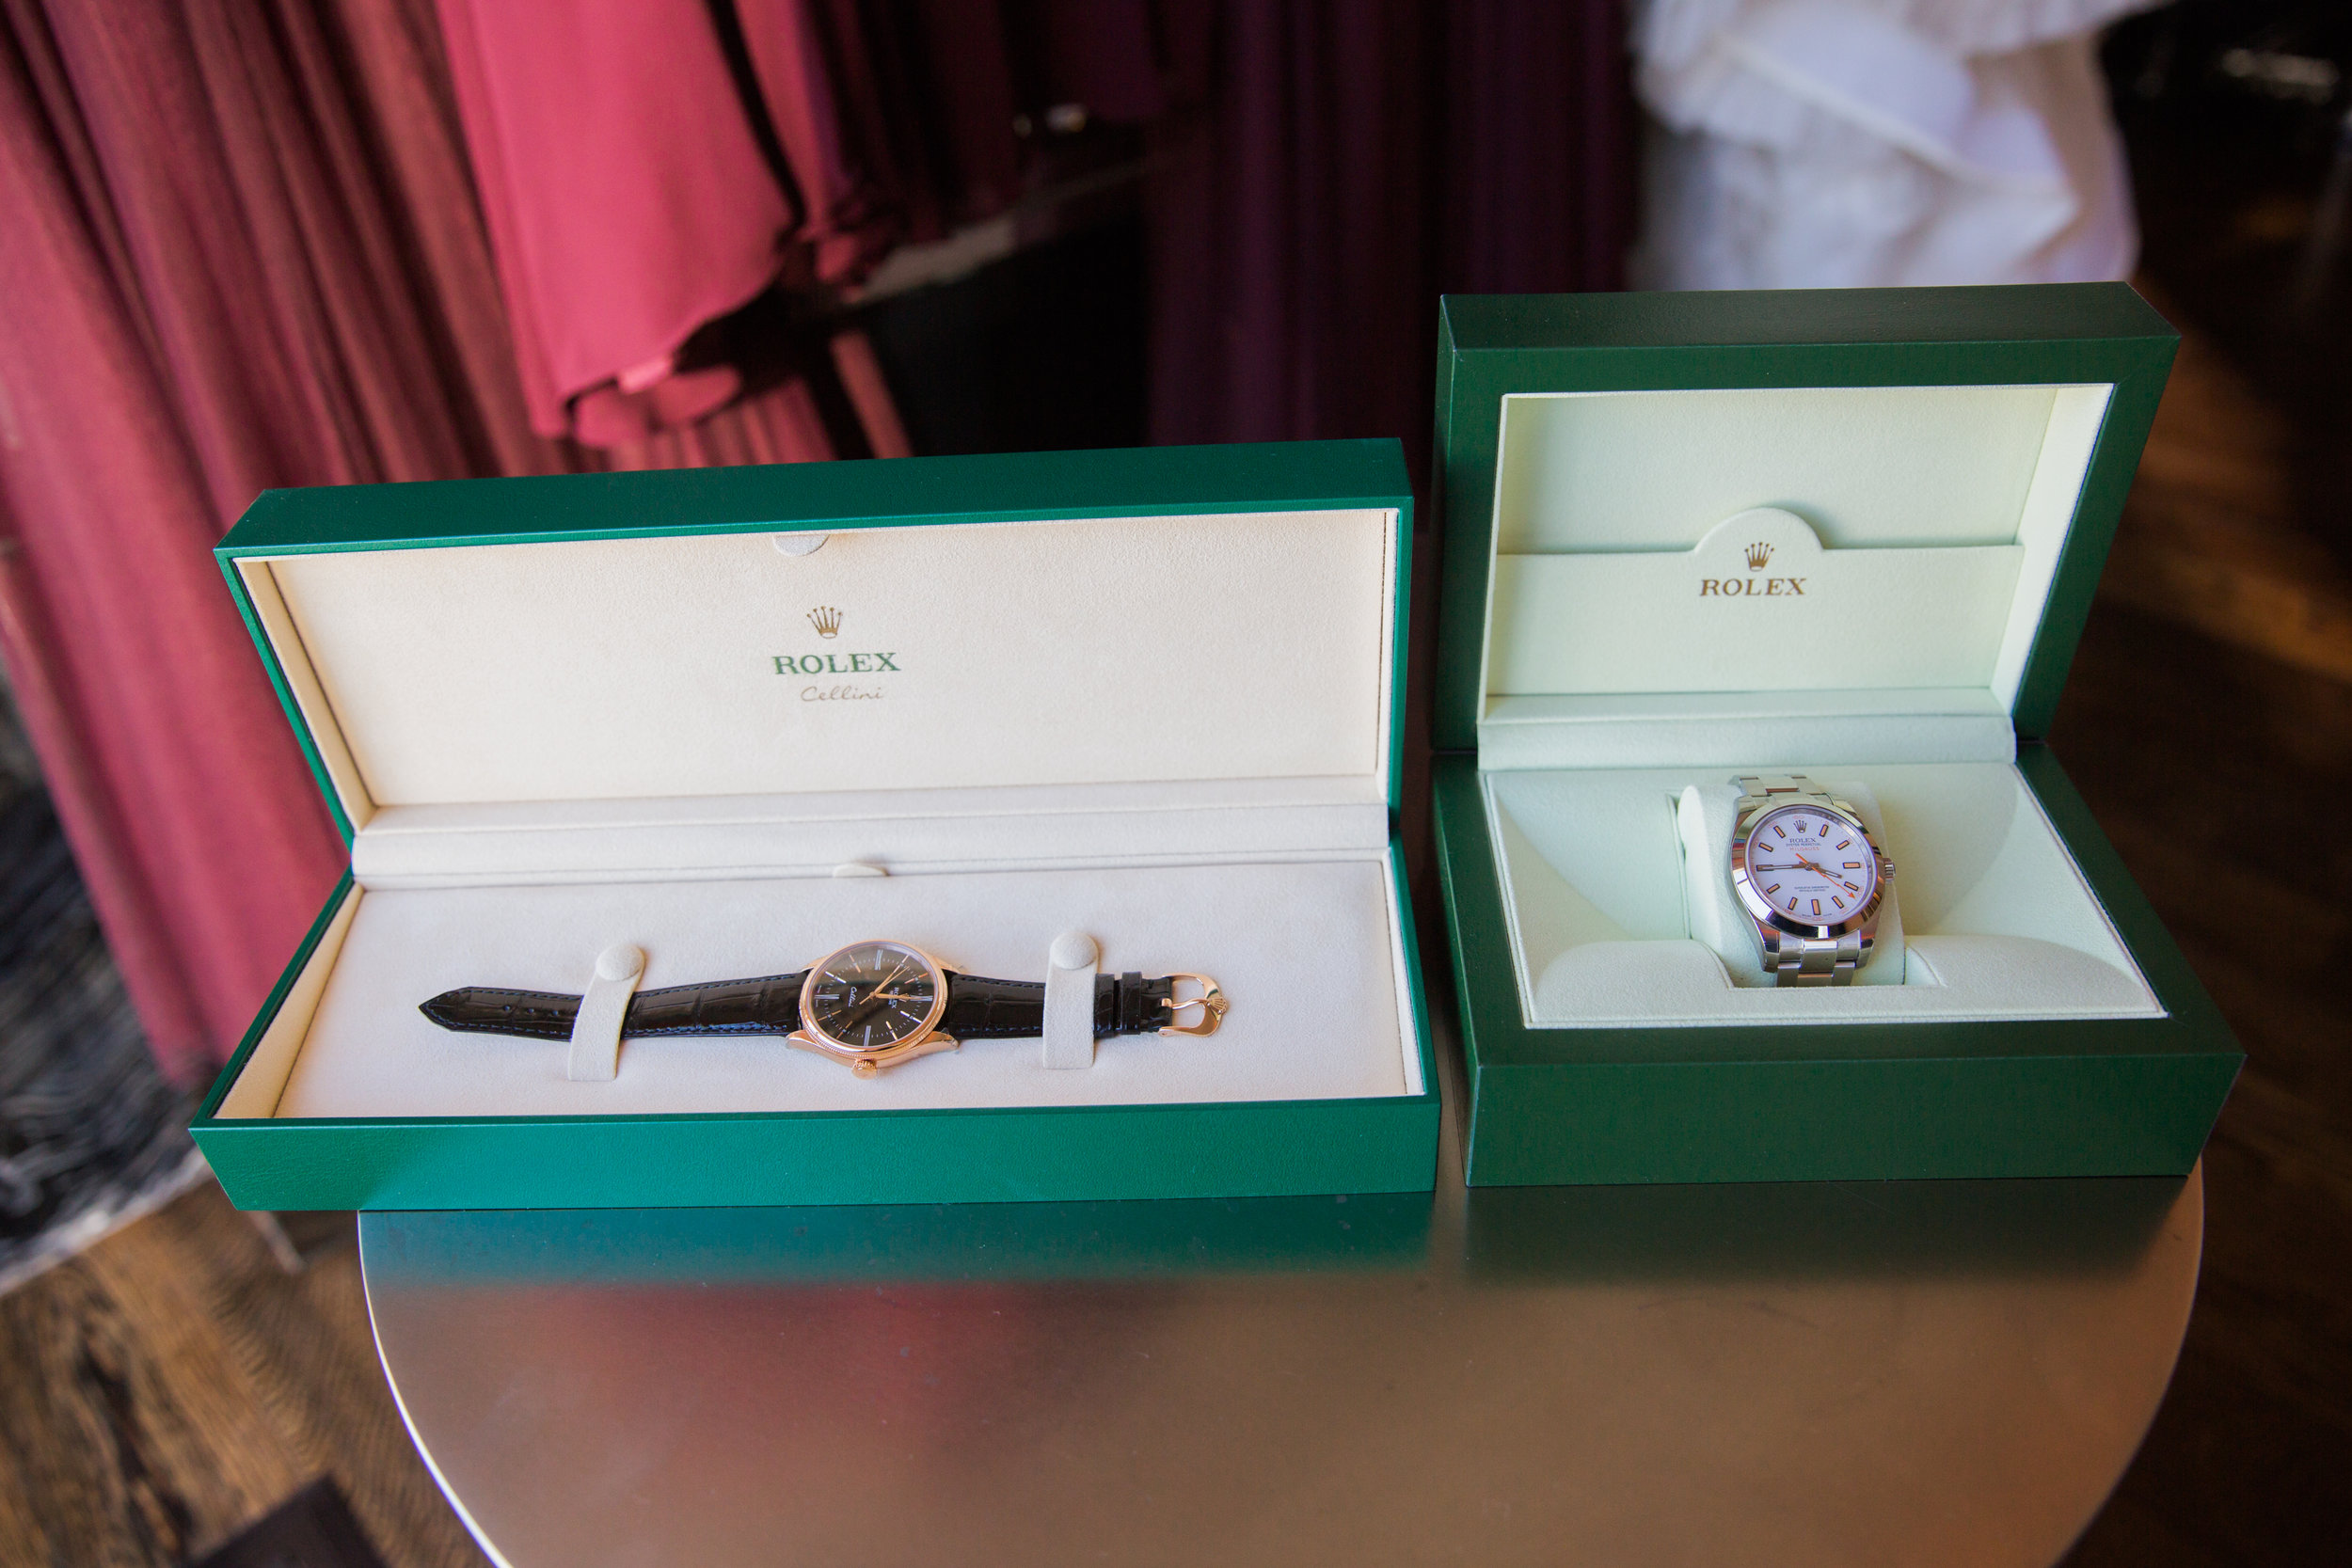 Rolex Watches as Wedding Gift.Luxury wedding at the Mandarin Oriental with a color scheme of white, blush, and pops of wine red produced by Las Vegas Wedding Planner Andrea Eppolito with photos by Stephen Salazar Photography.